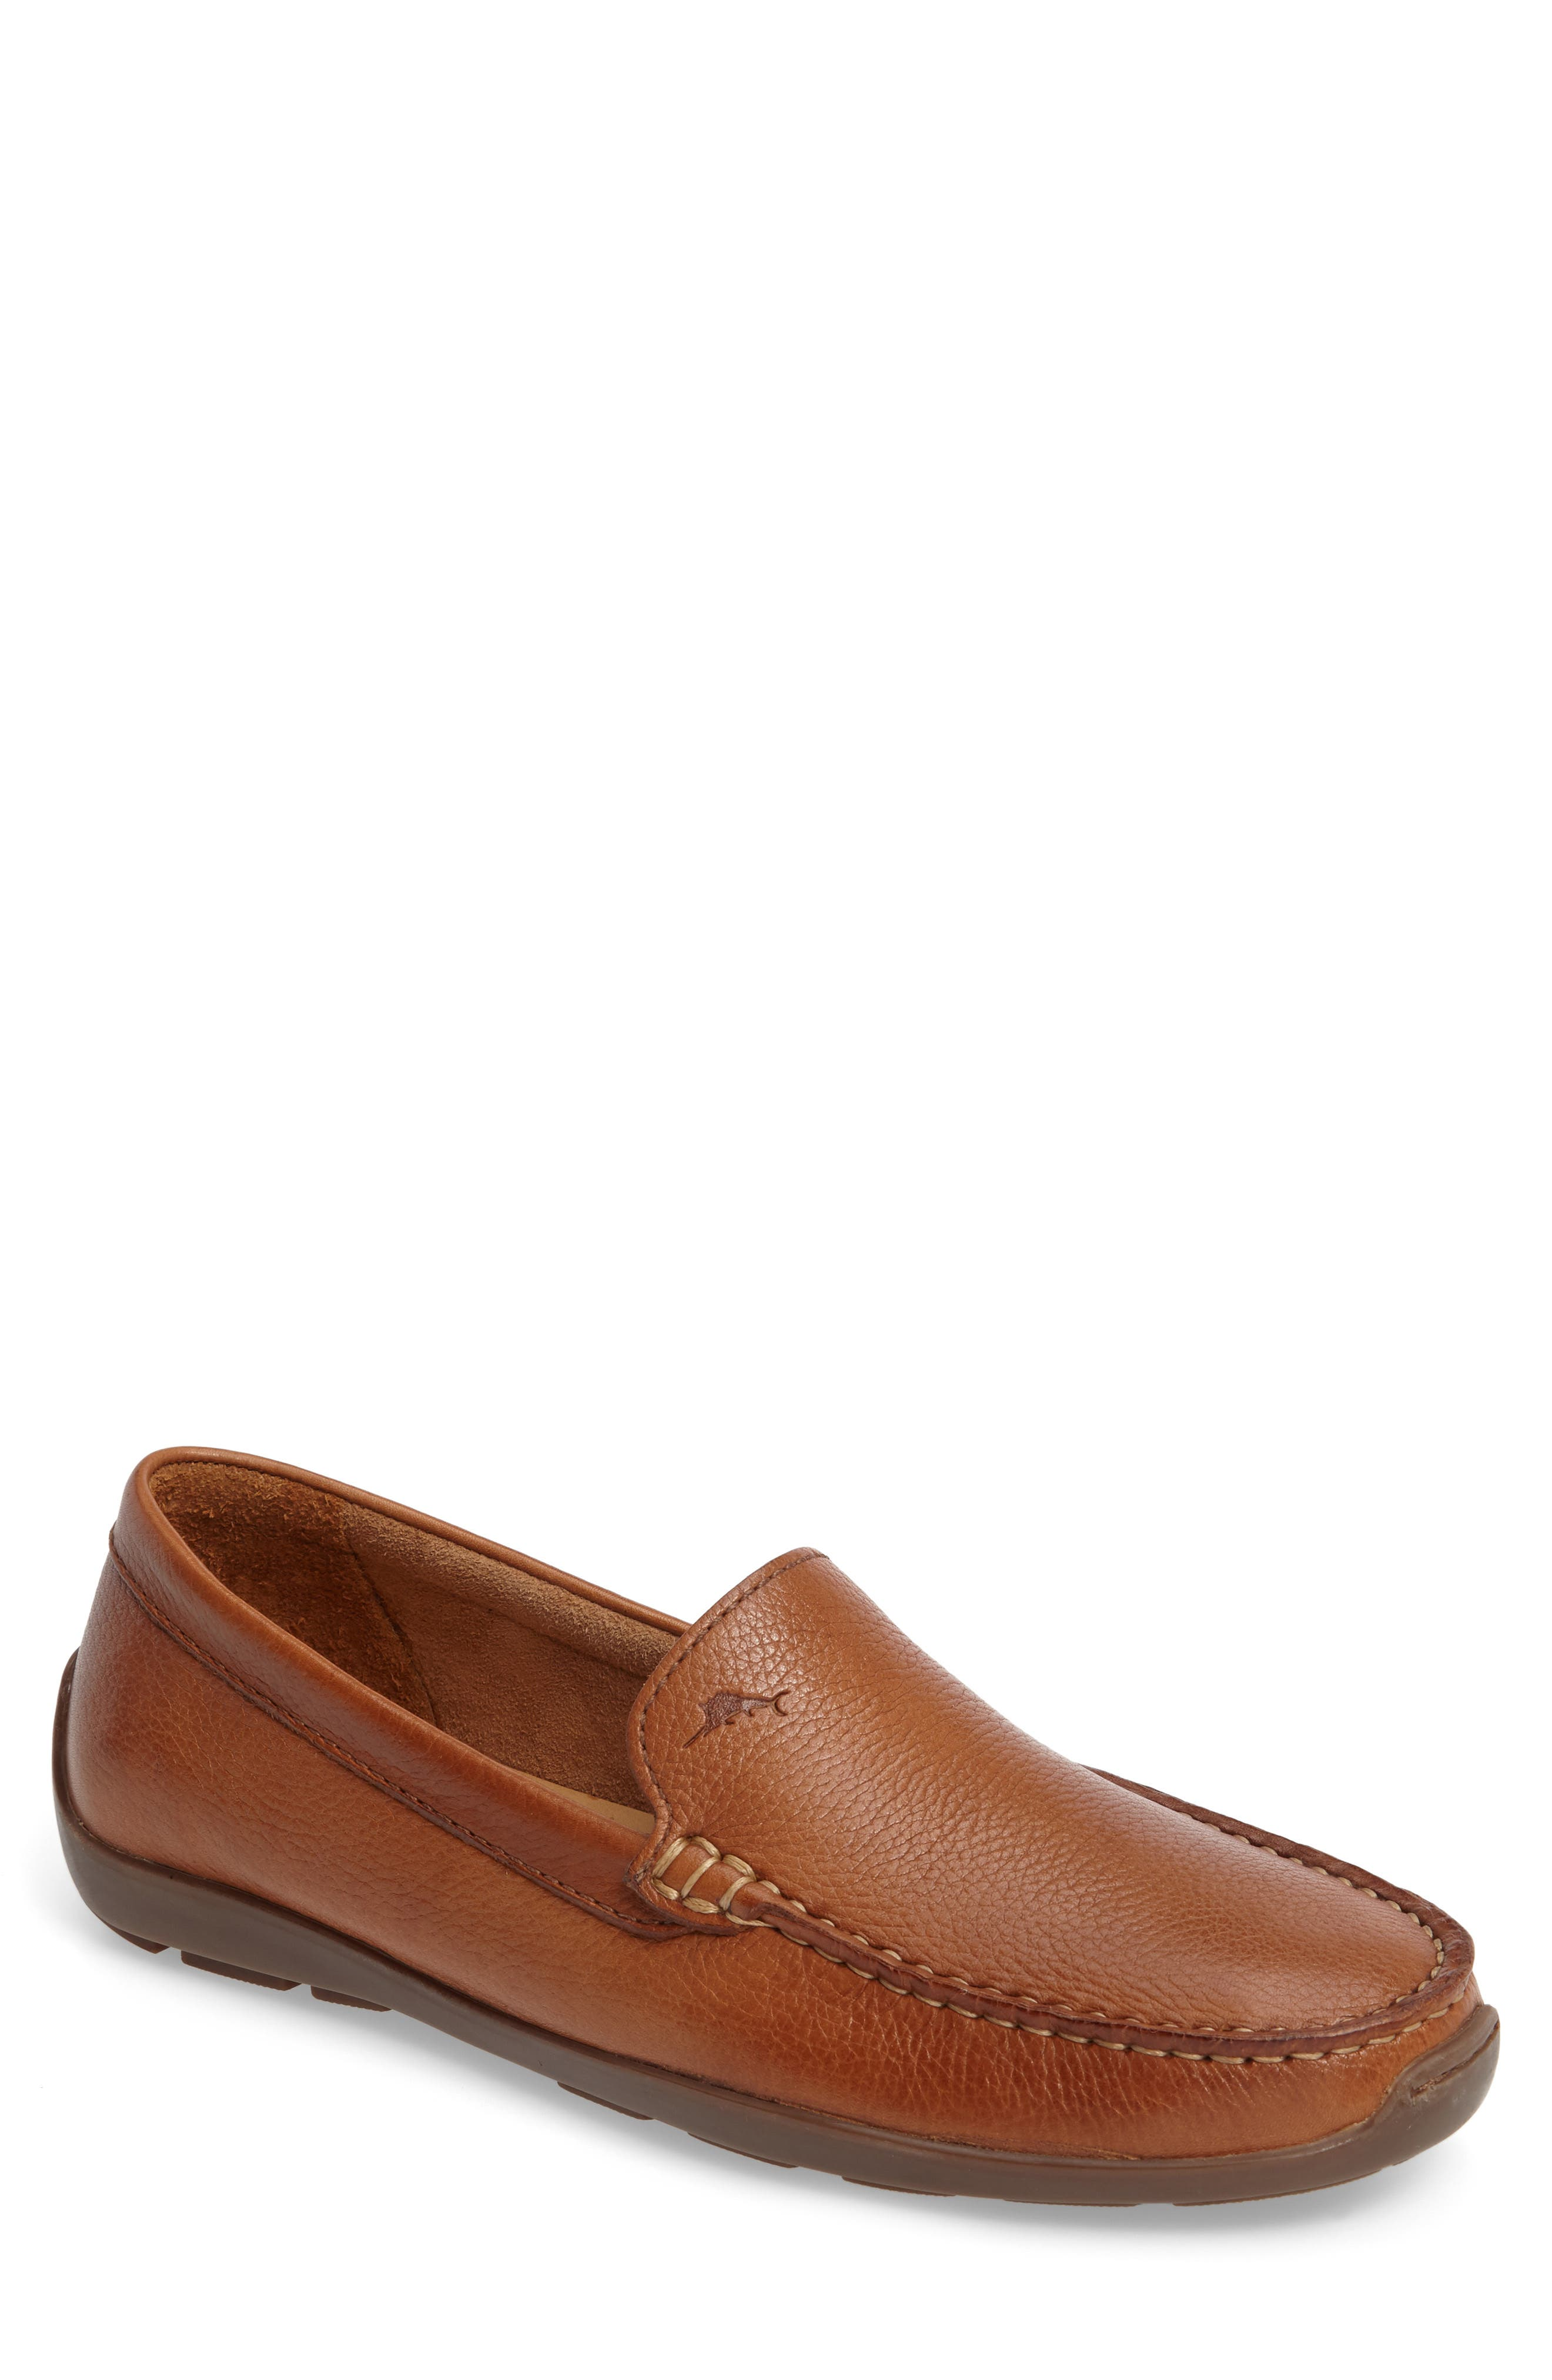 Orion Venetian Loafer,                         Main,                         color, TAN LEATHER